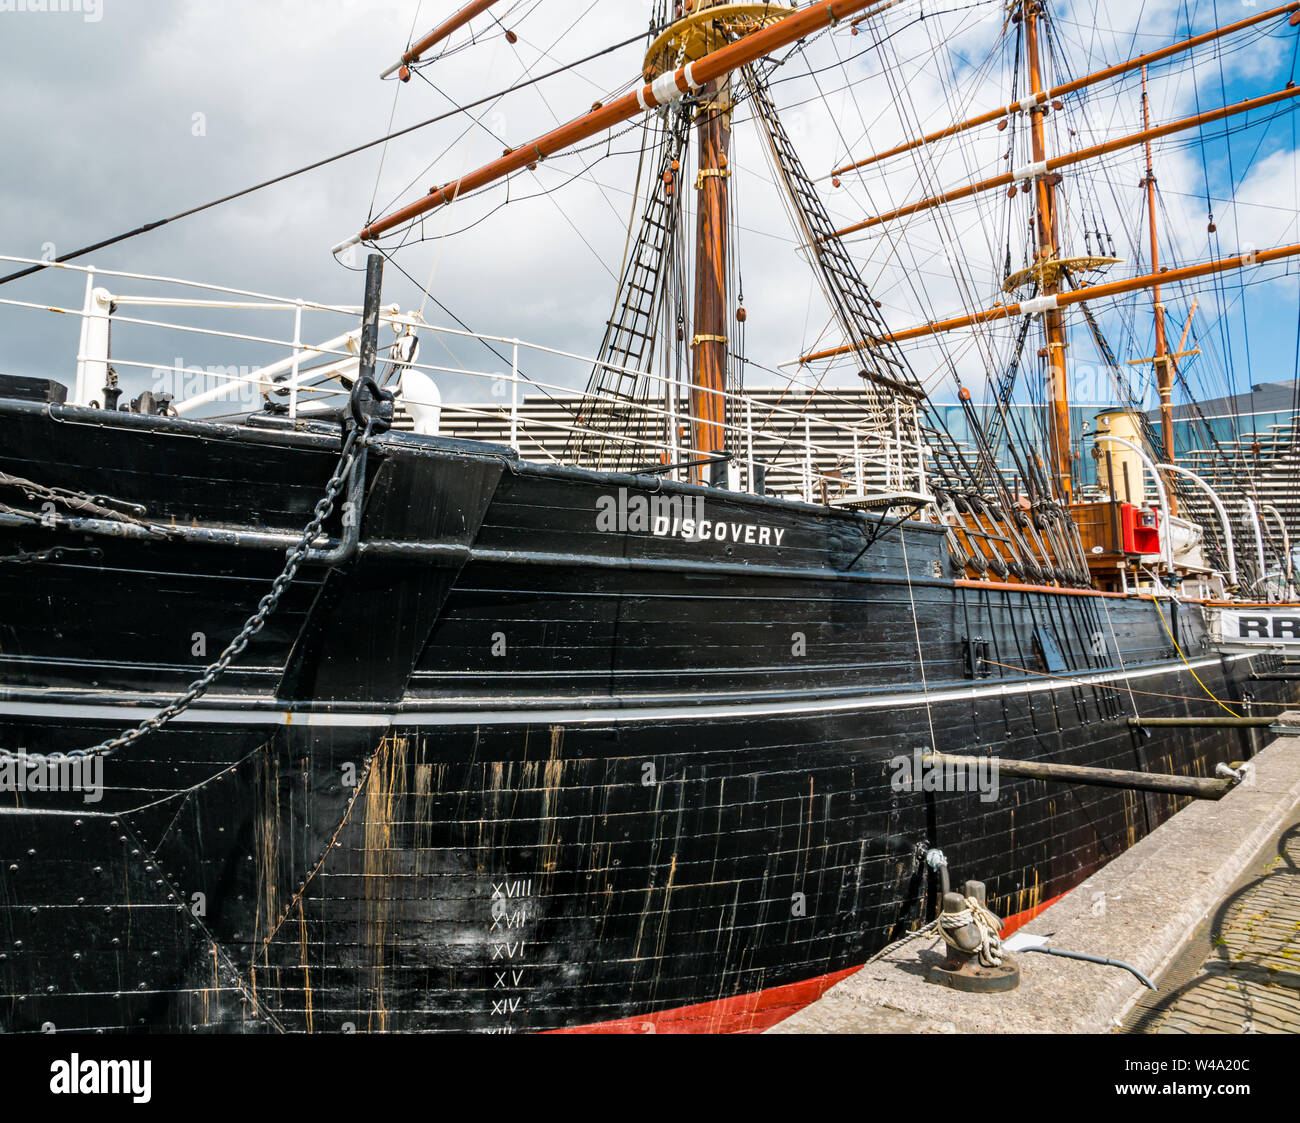 RSS Discovery Antarctic research ship in dry dock, Waterfront  Riverside Esplanade, Dundee, Scotland, UK Stock Photo